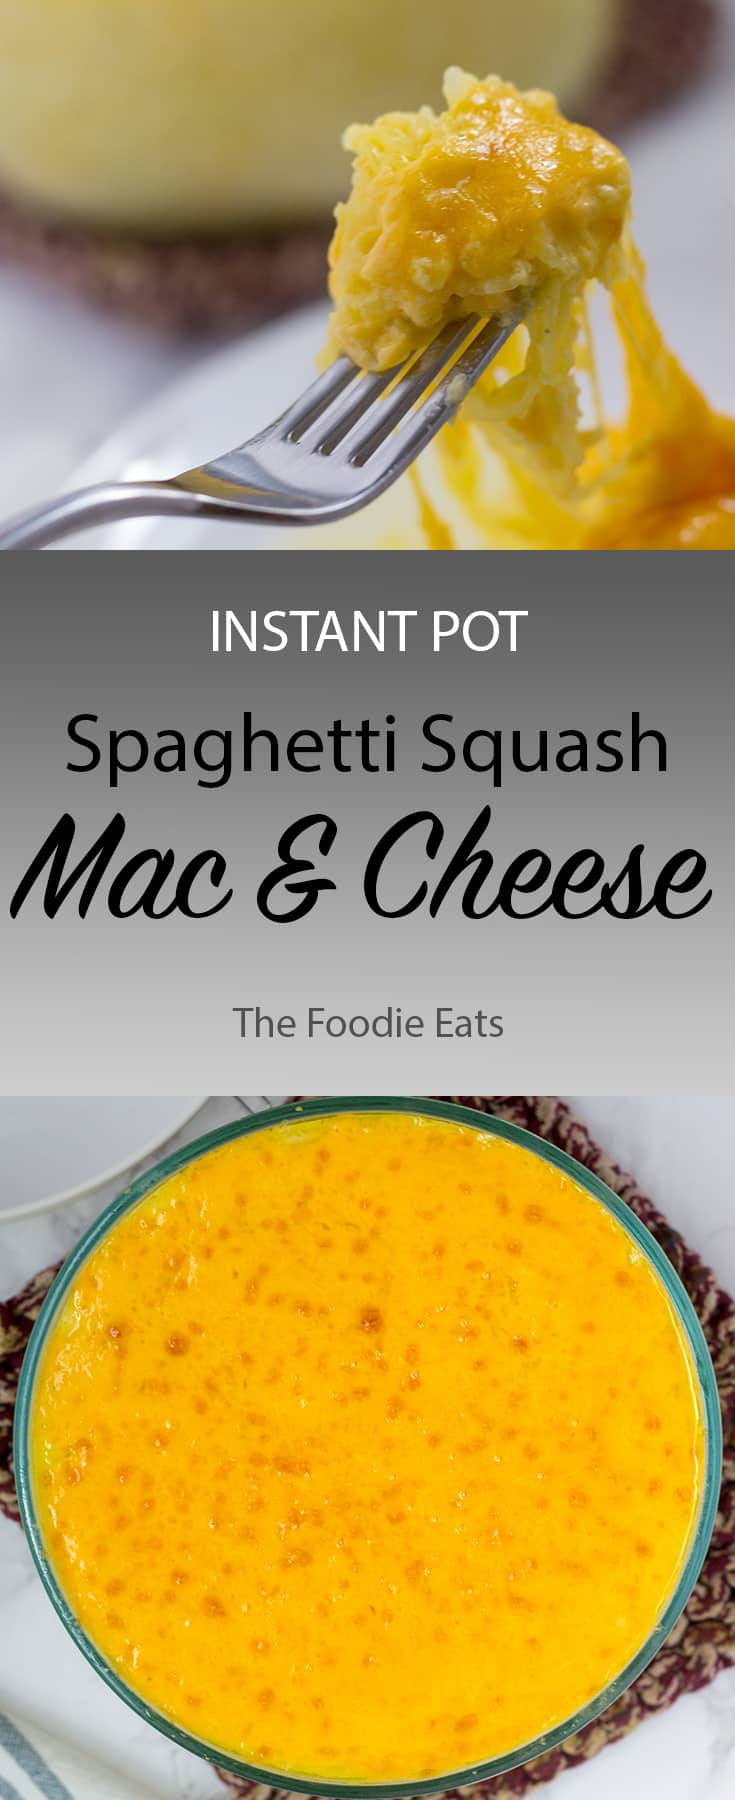 Spaghetti Squash Mac and Cheese | The Foodie Eats